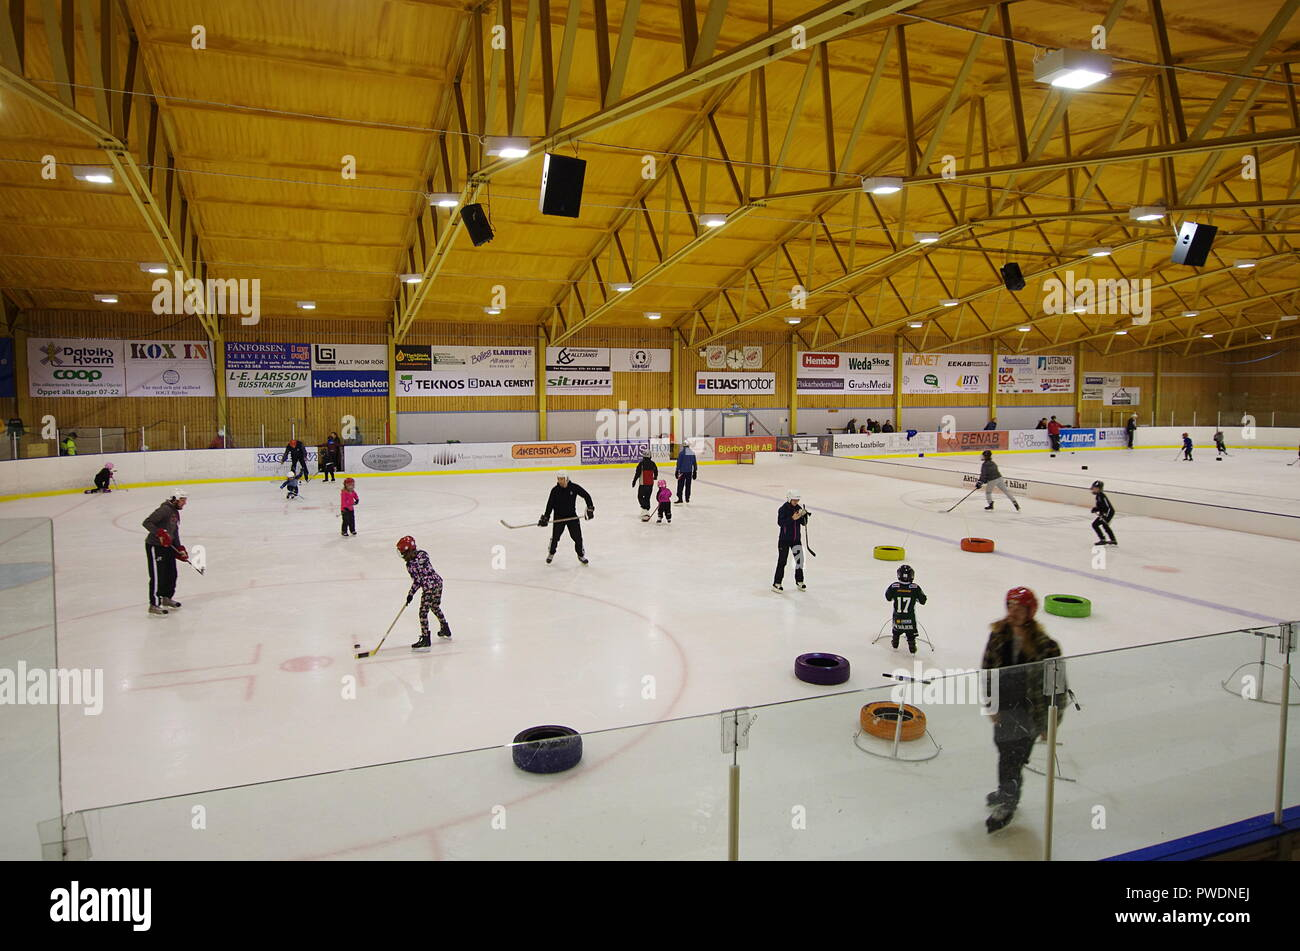 Ice Hockey training with children in a Hockey Arena in a small town of Björbo in Dalarna. 14.10.2018 - Stock Image